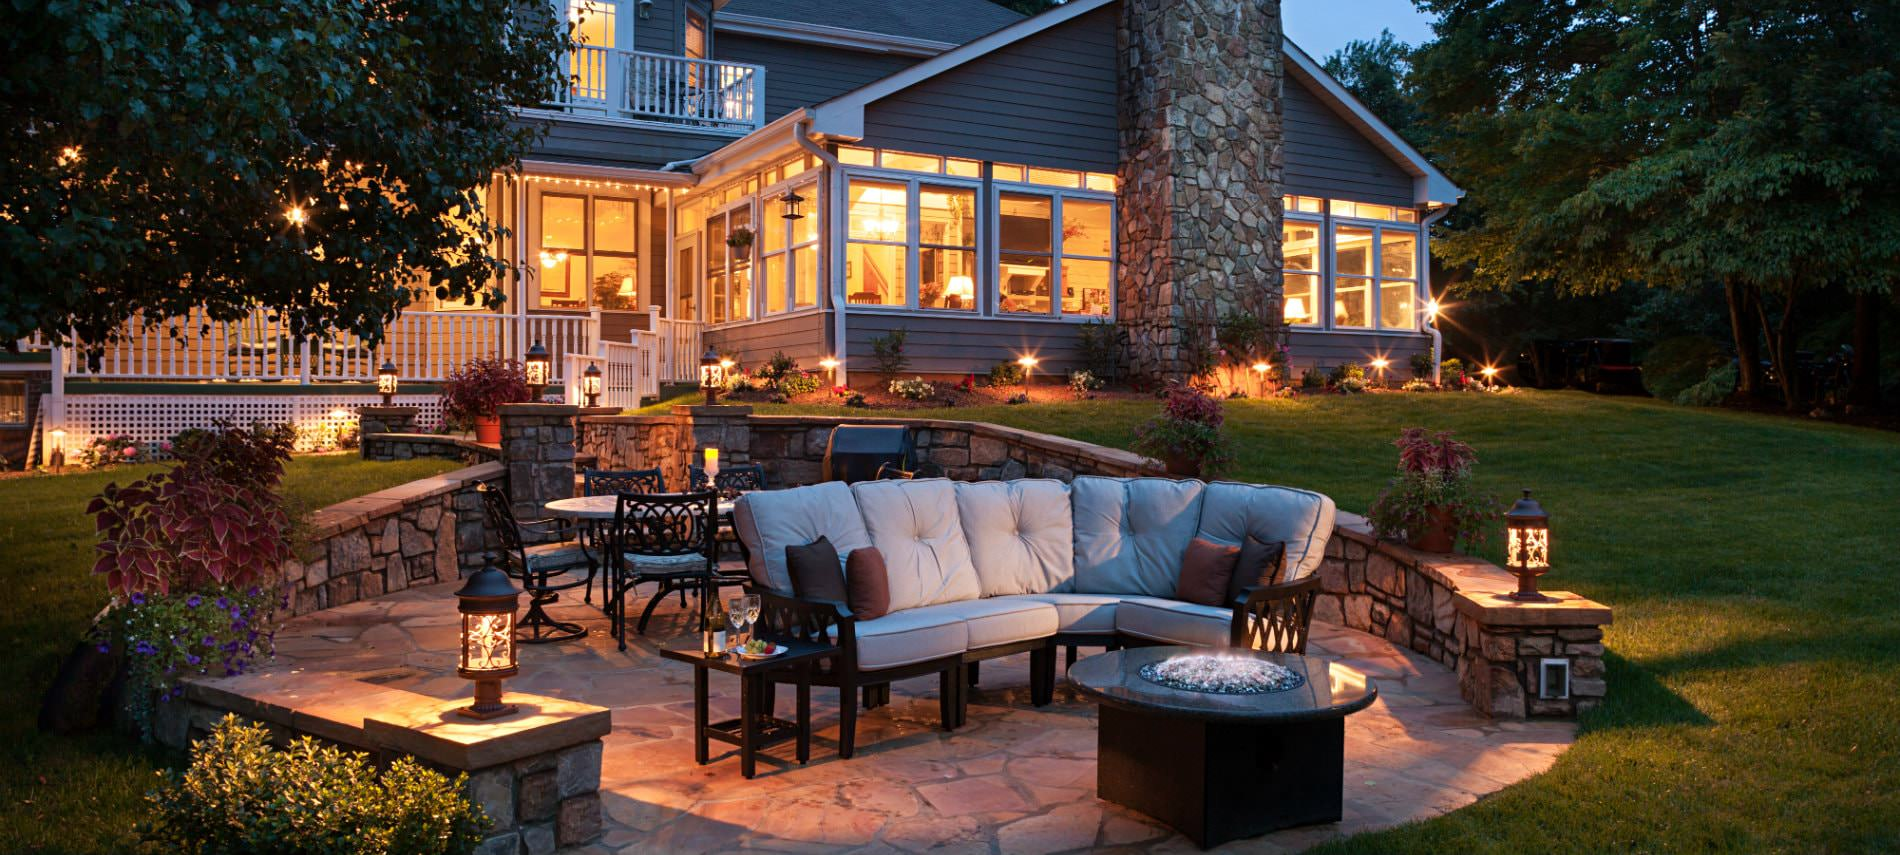 Night view of the Andon-Reid Inn patio and firepit